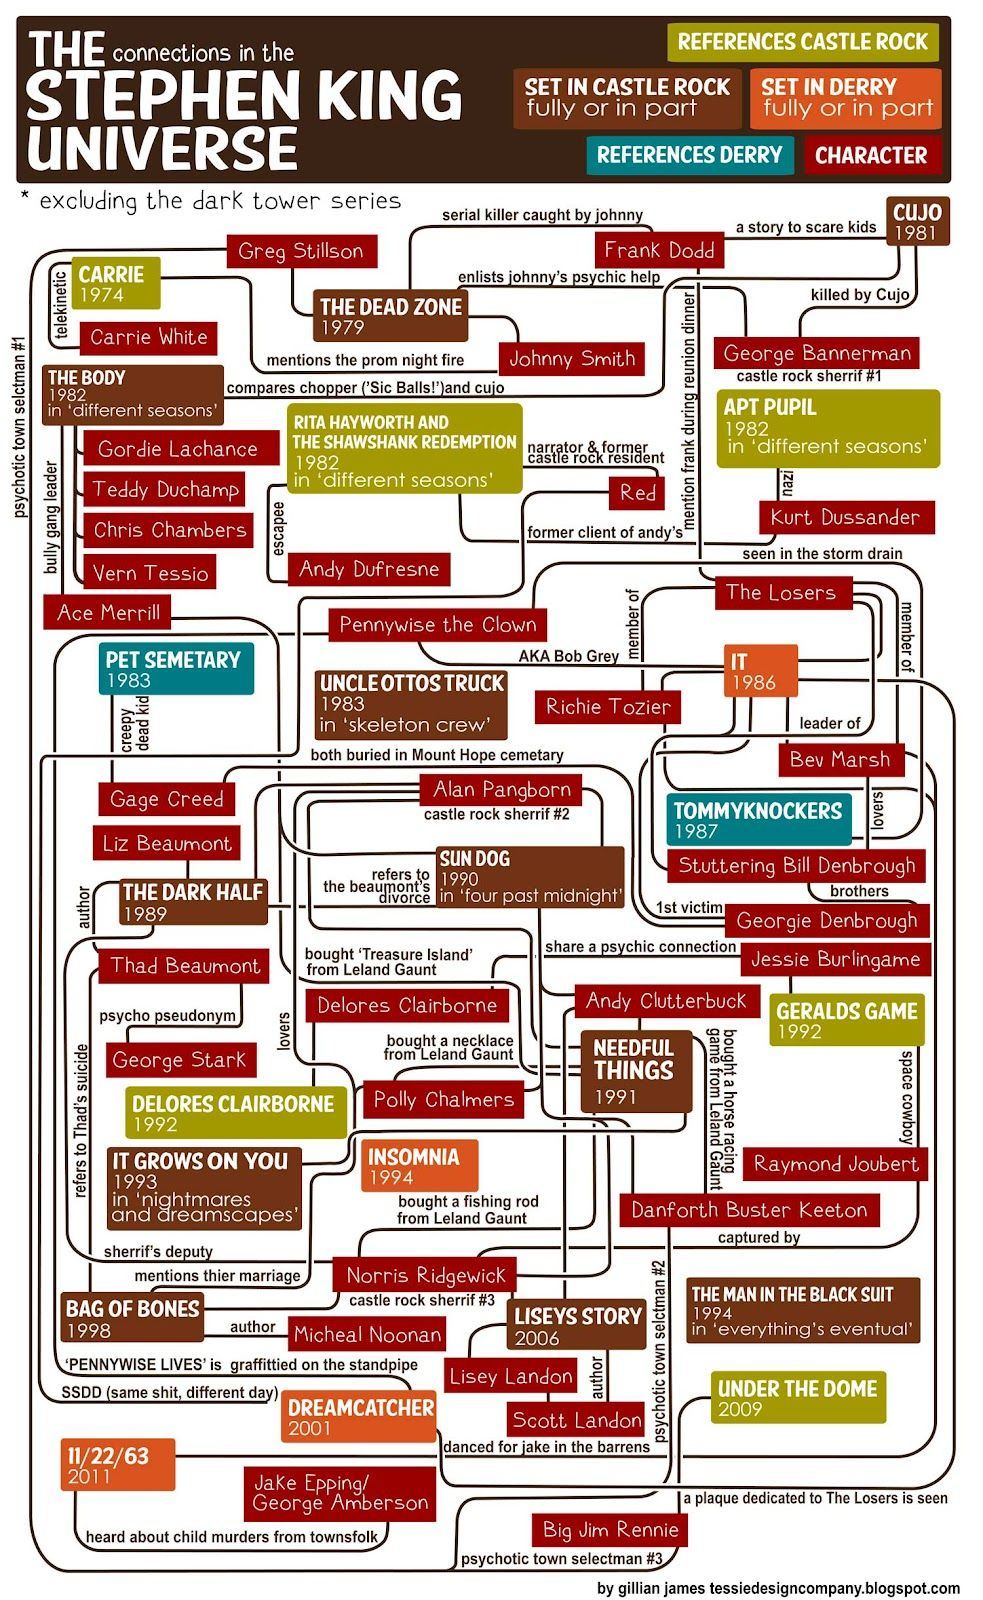 Stephen King fans can test their obscure character knowledge with the Stephen King Universe Flowchart.